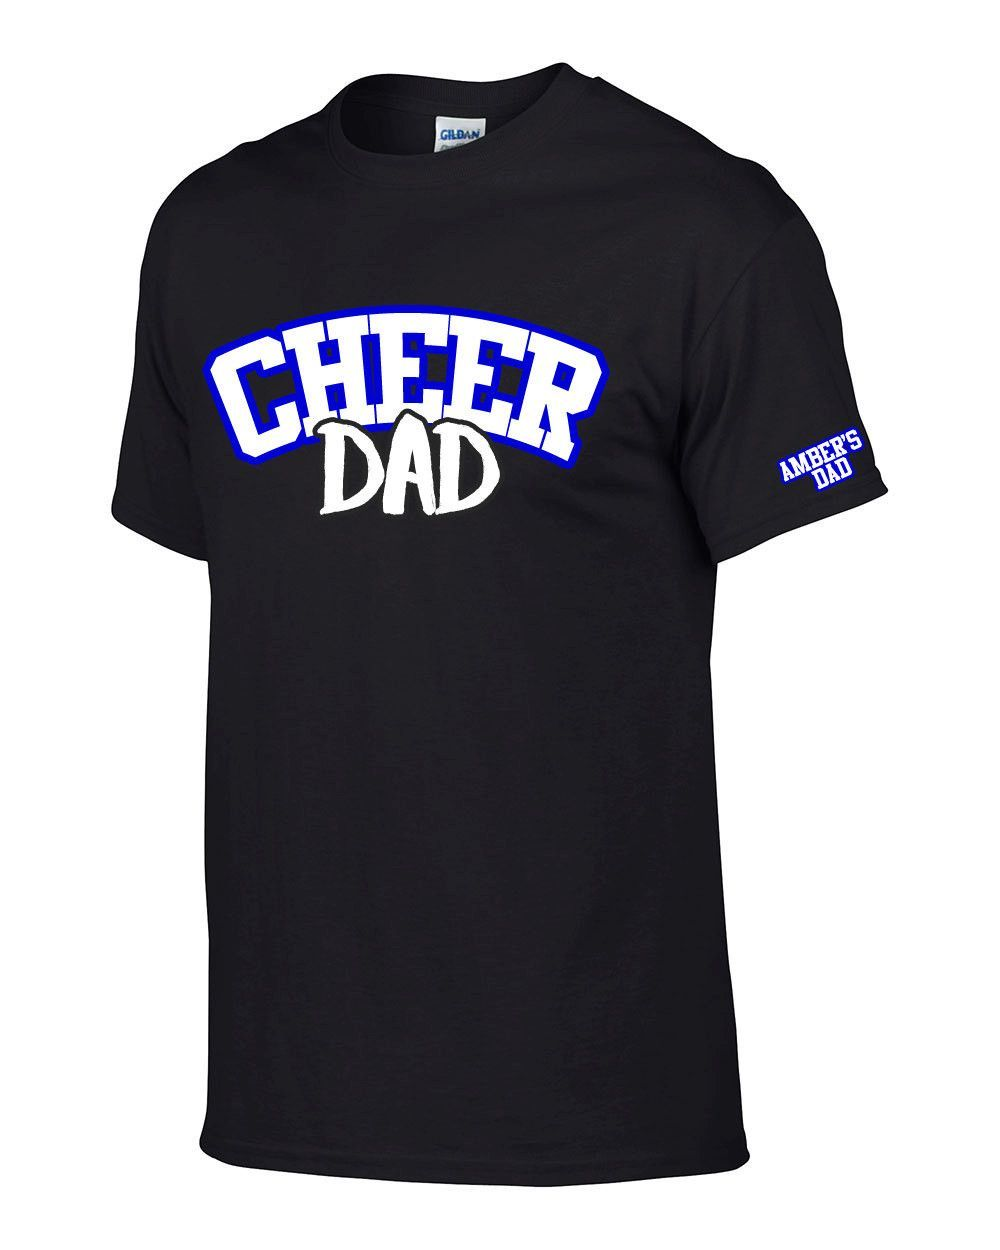 24bb3b975b8 Finally a personalized one ! Cheer Dad T Shirt Custom.Cheerleader Dads.  Cheer Parents.